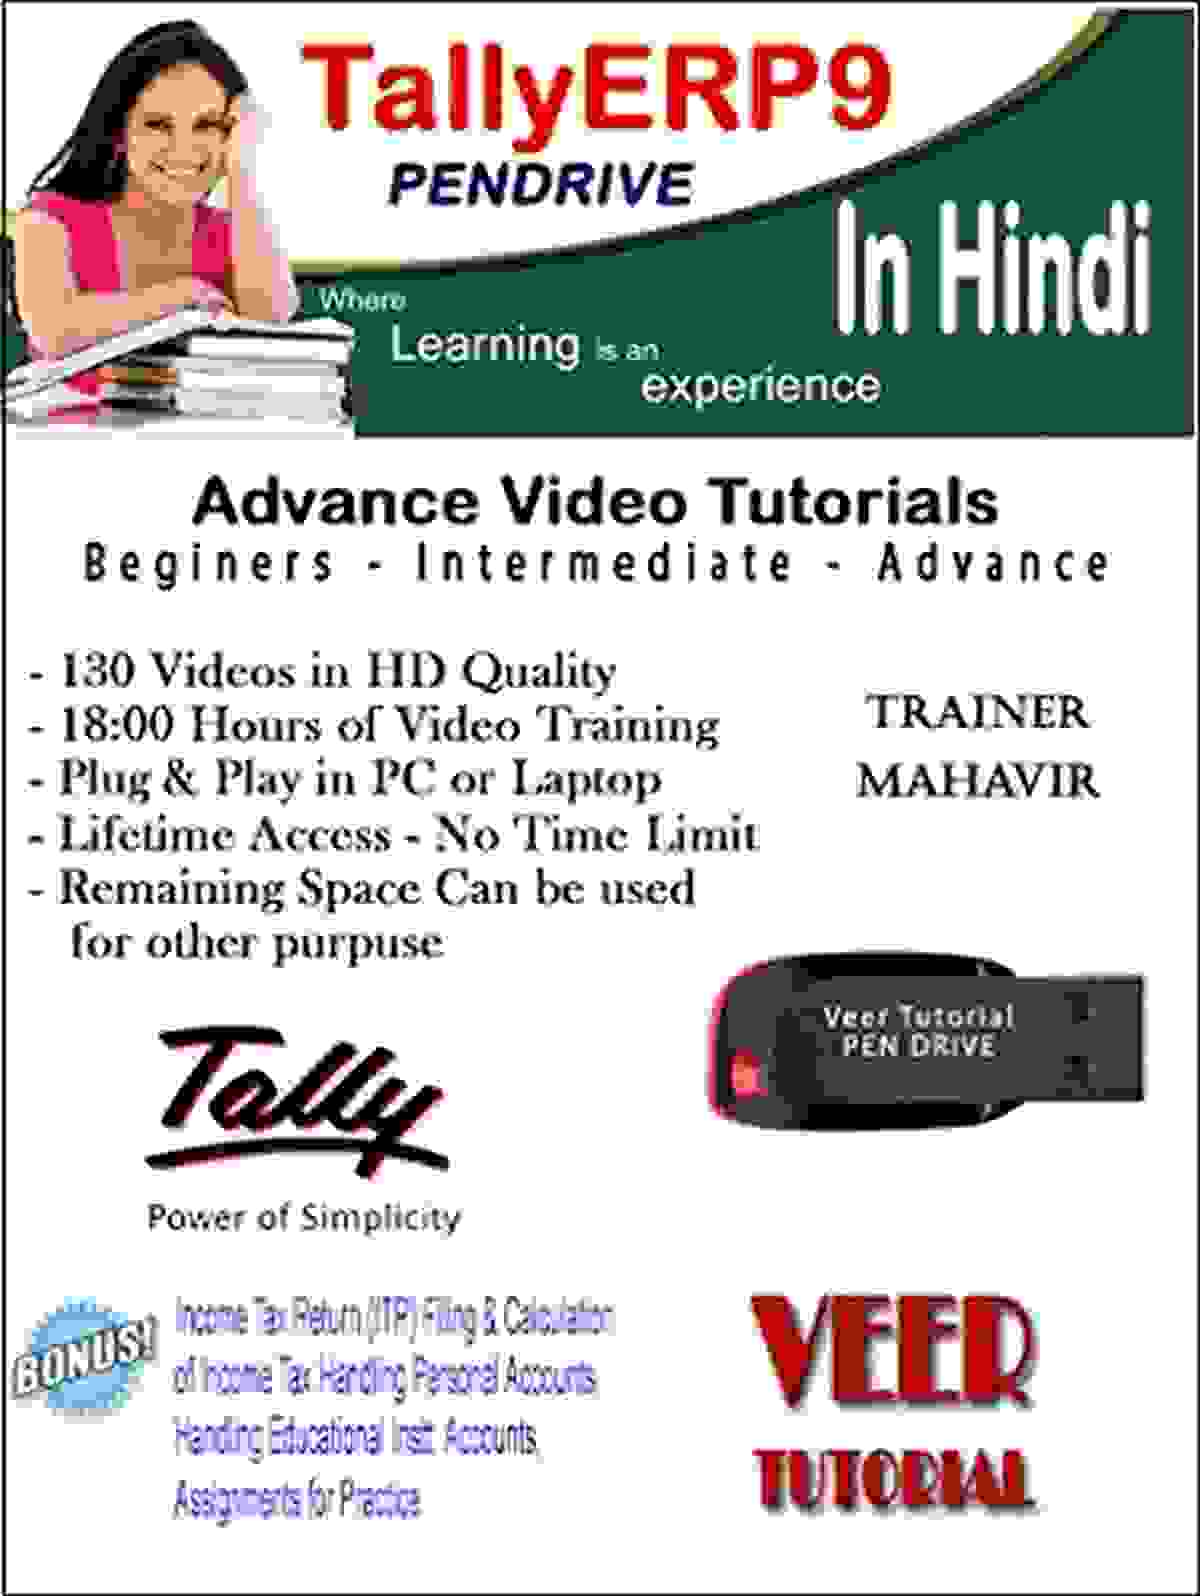 TallyERP9 Learning Tutorial Latest Version Basic to Advance Course (1 Pendrive, 130 HD Videos, 19 Hrs) Training in Hindi Video